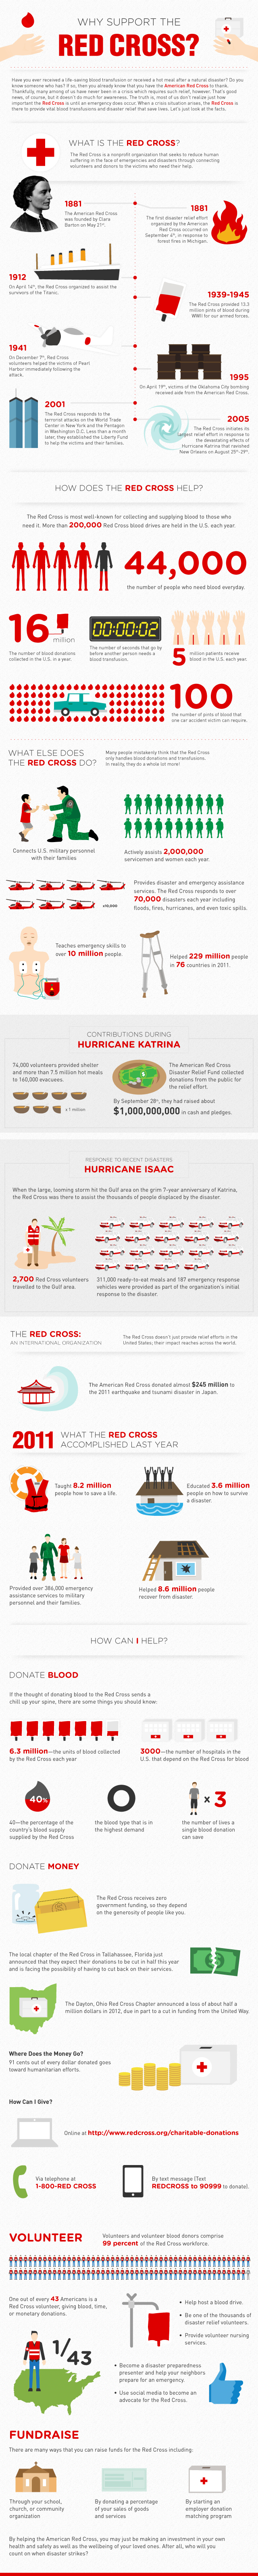 Why Support the Red Cross